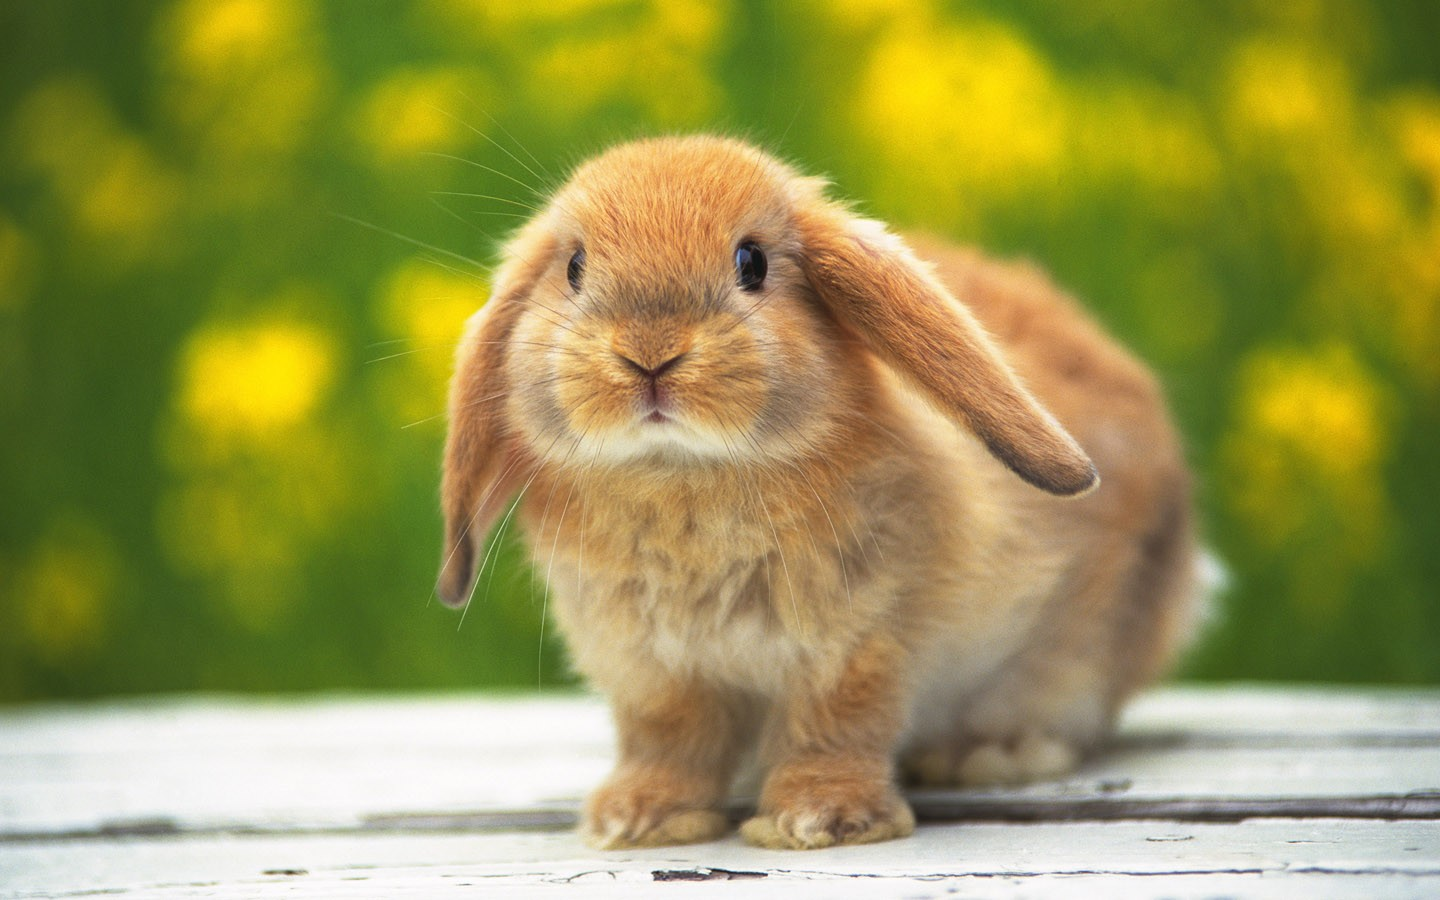 Adorable Rabbit Wallpaper